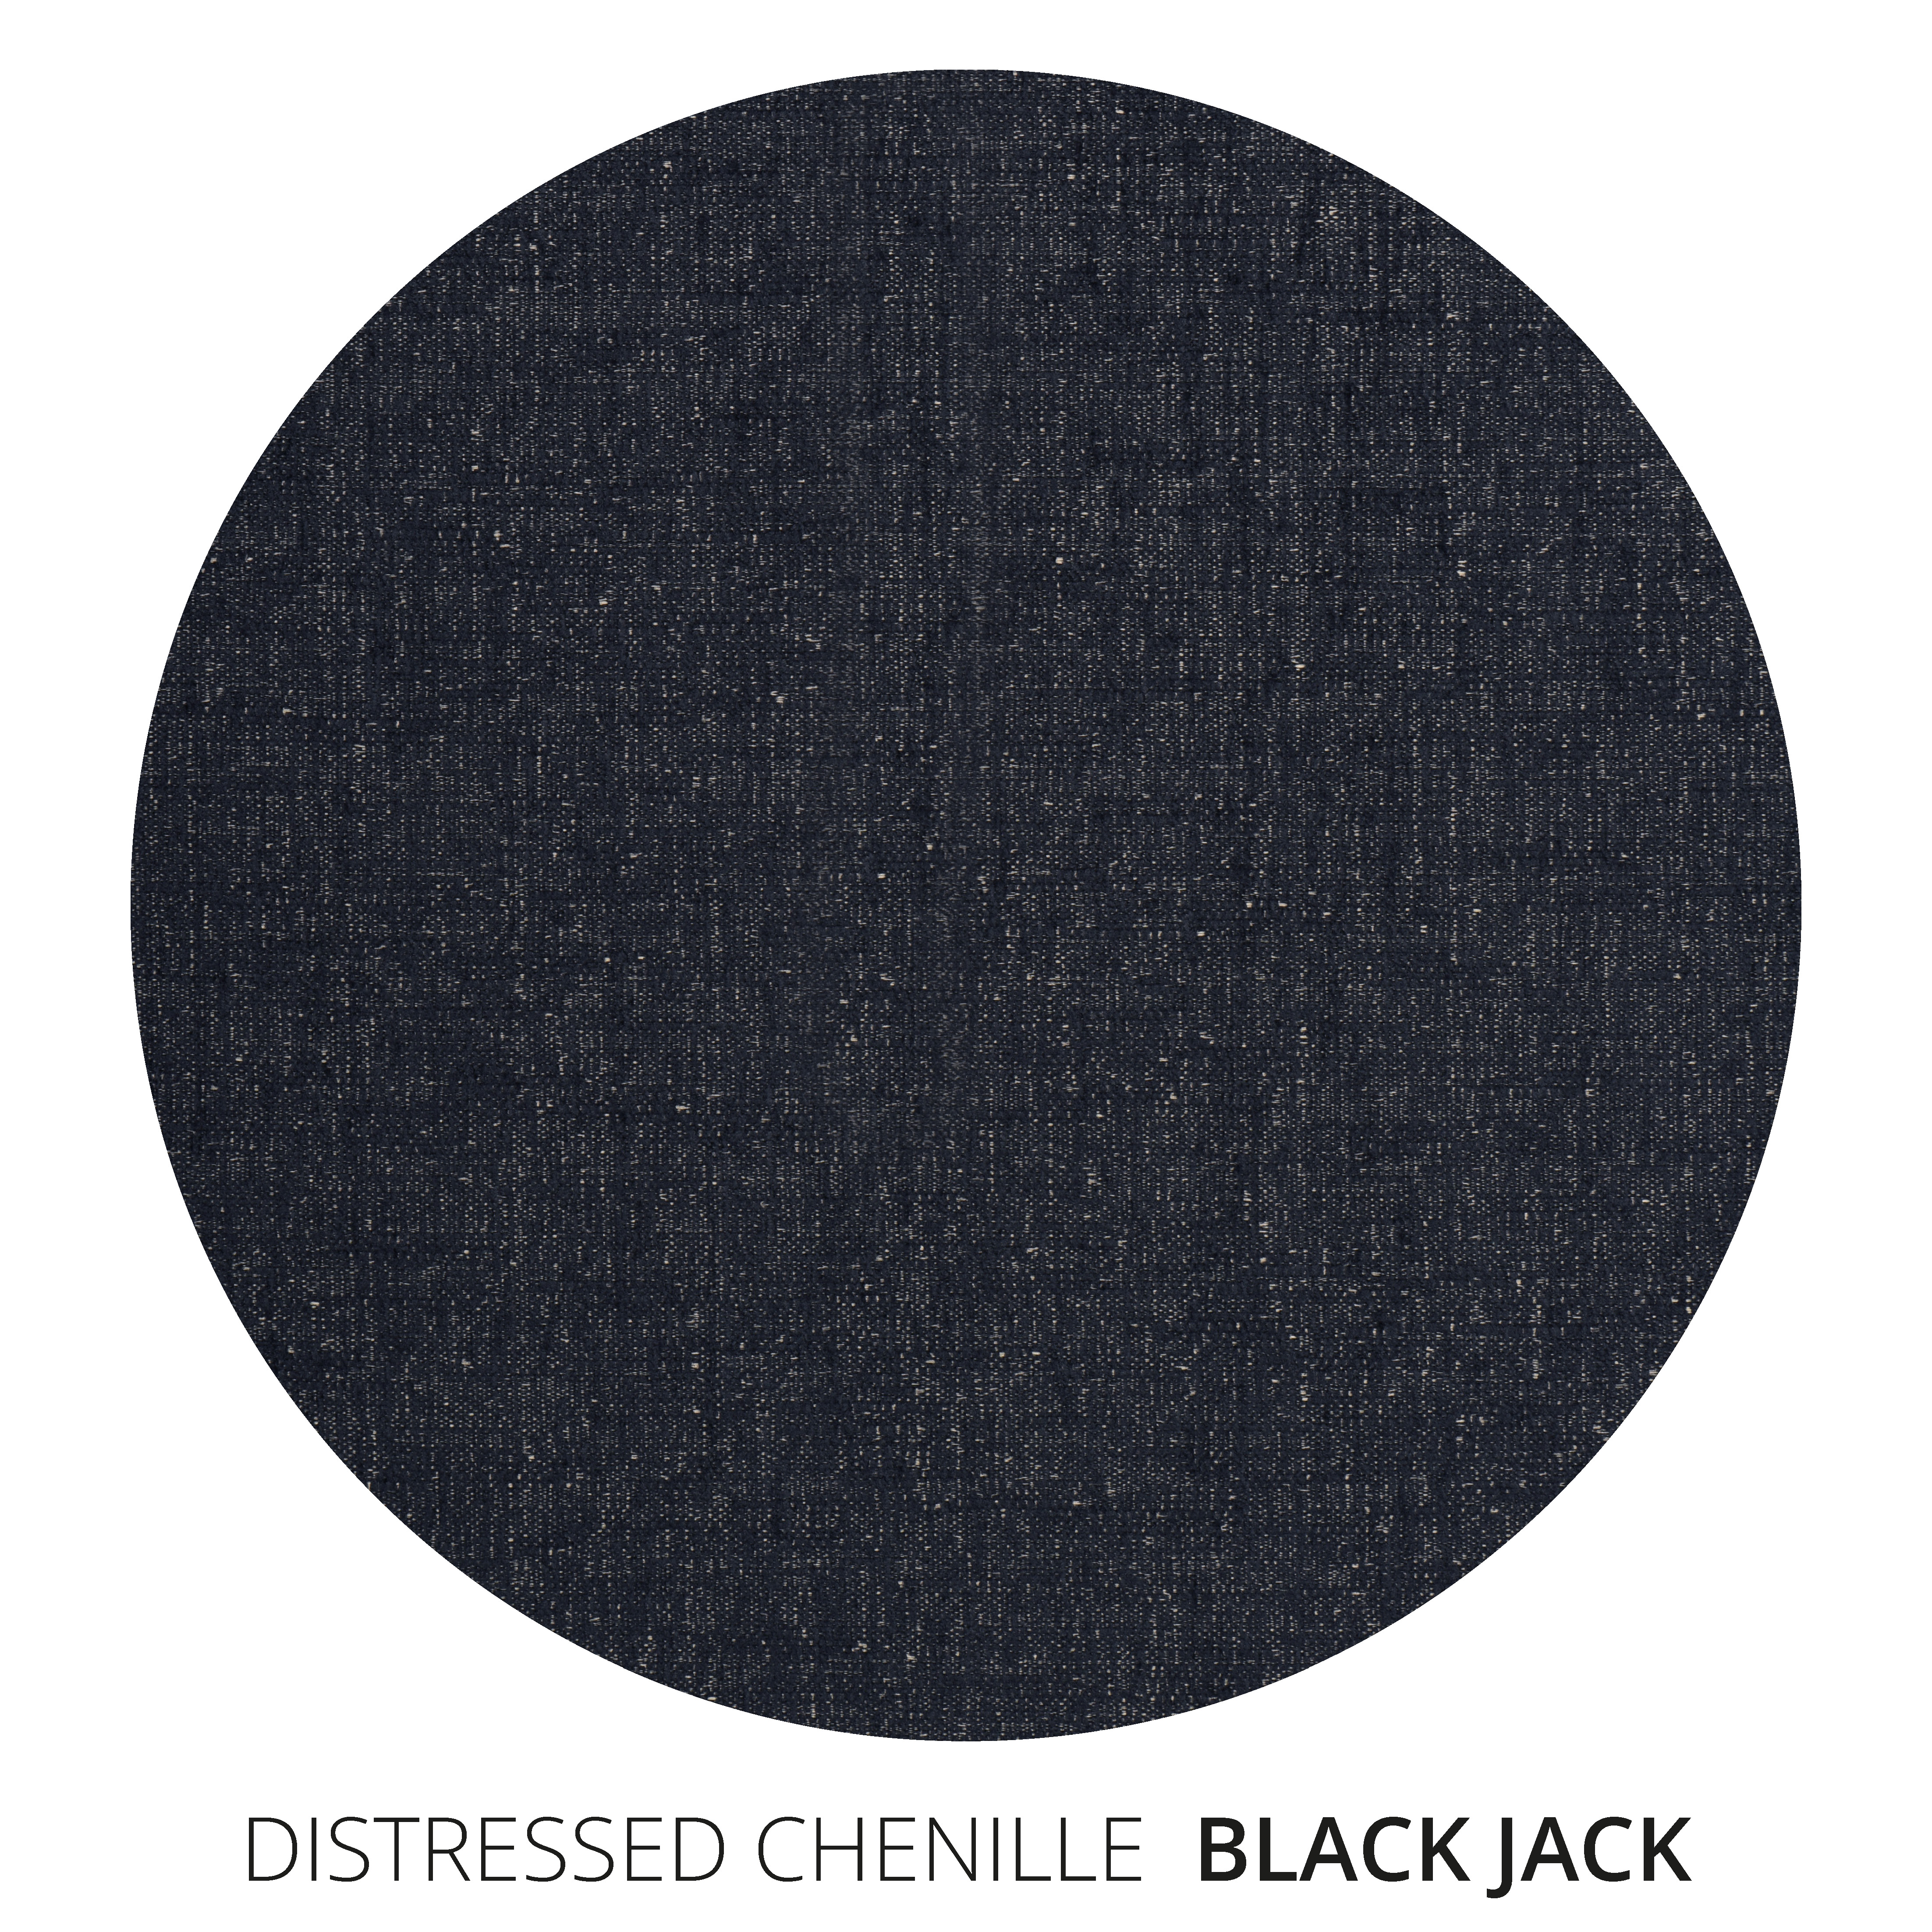 Black Jack Distressed Chenille Swatch